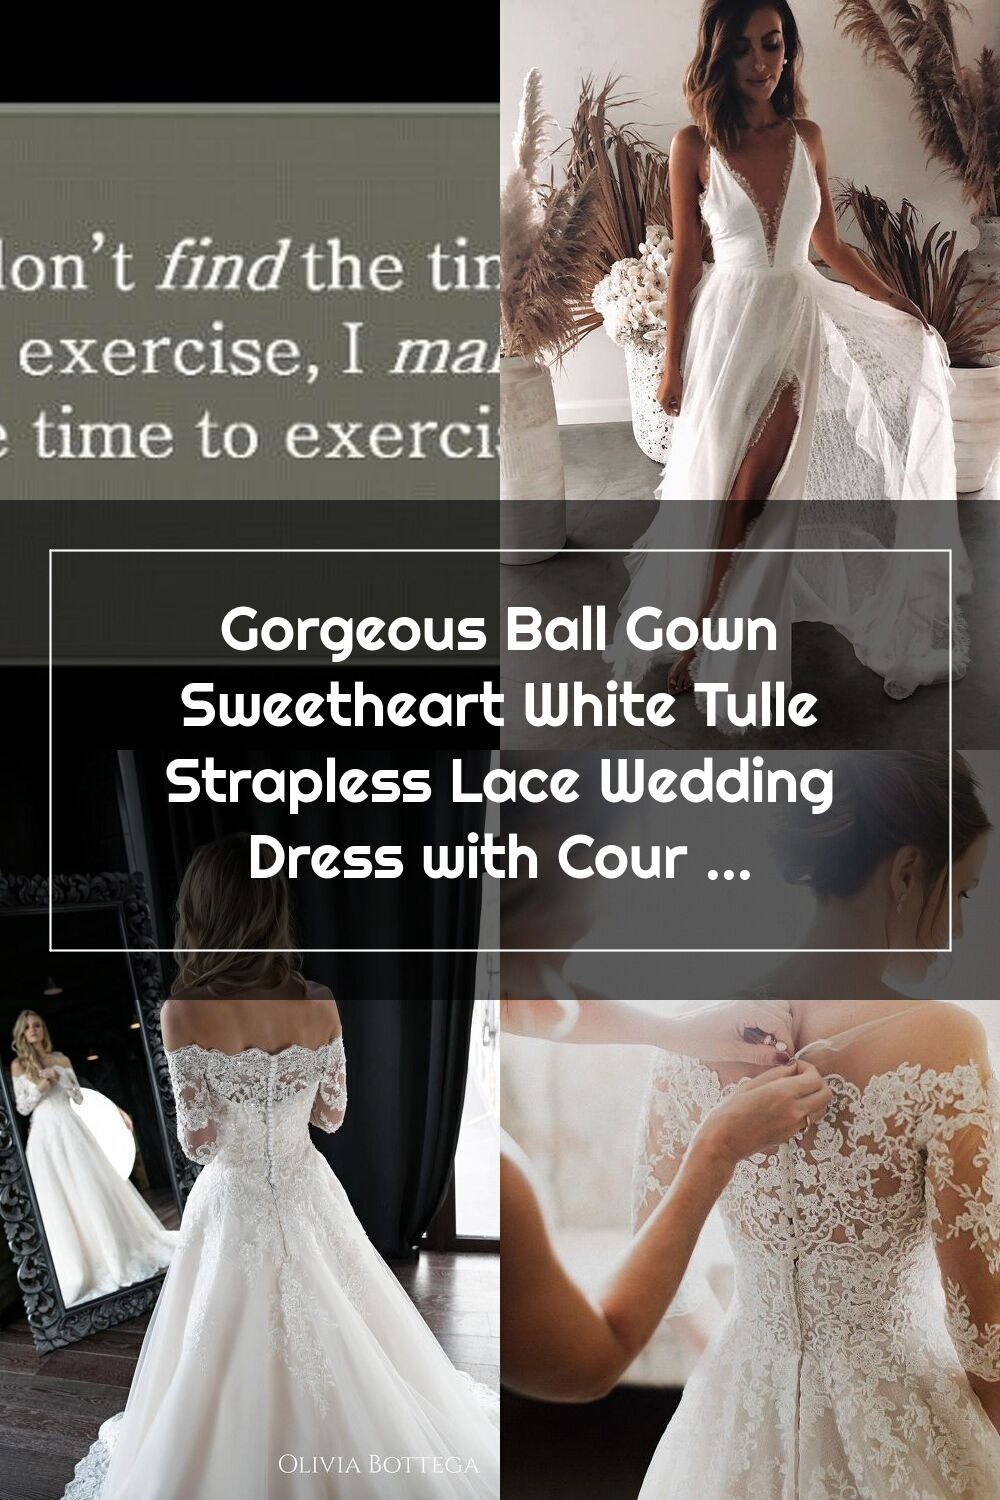 Ball Gown Sweetheart White Tulle Strapless Lace